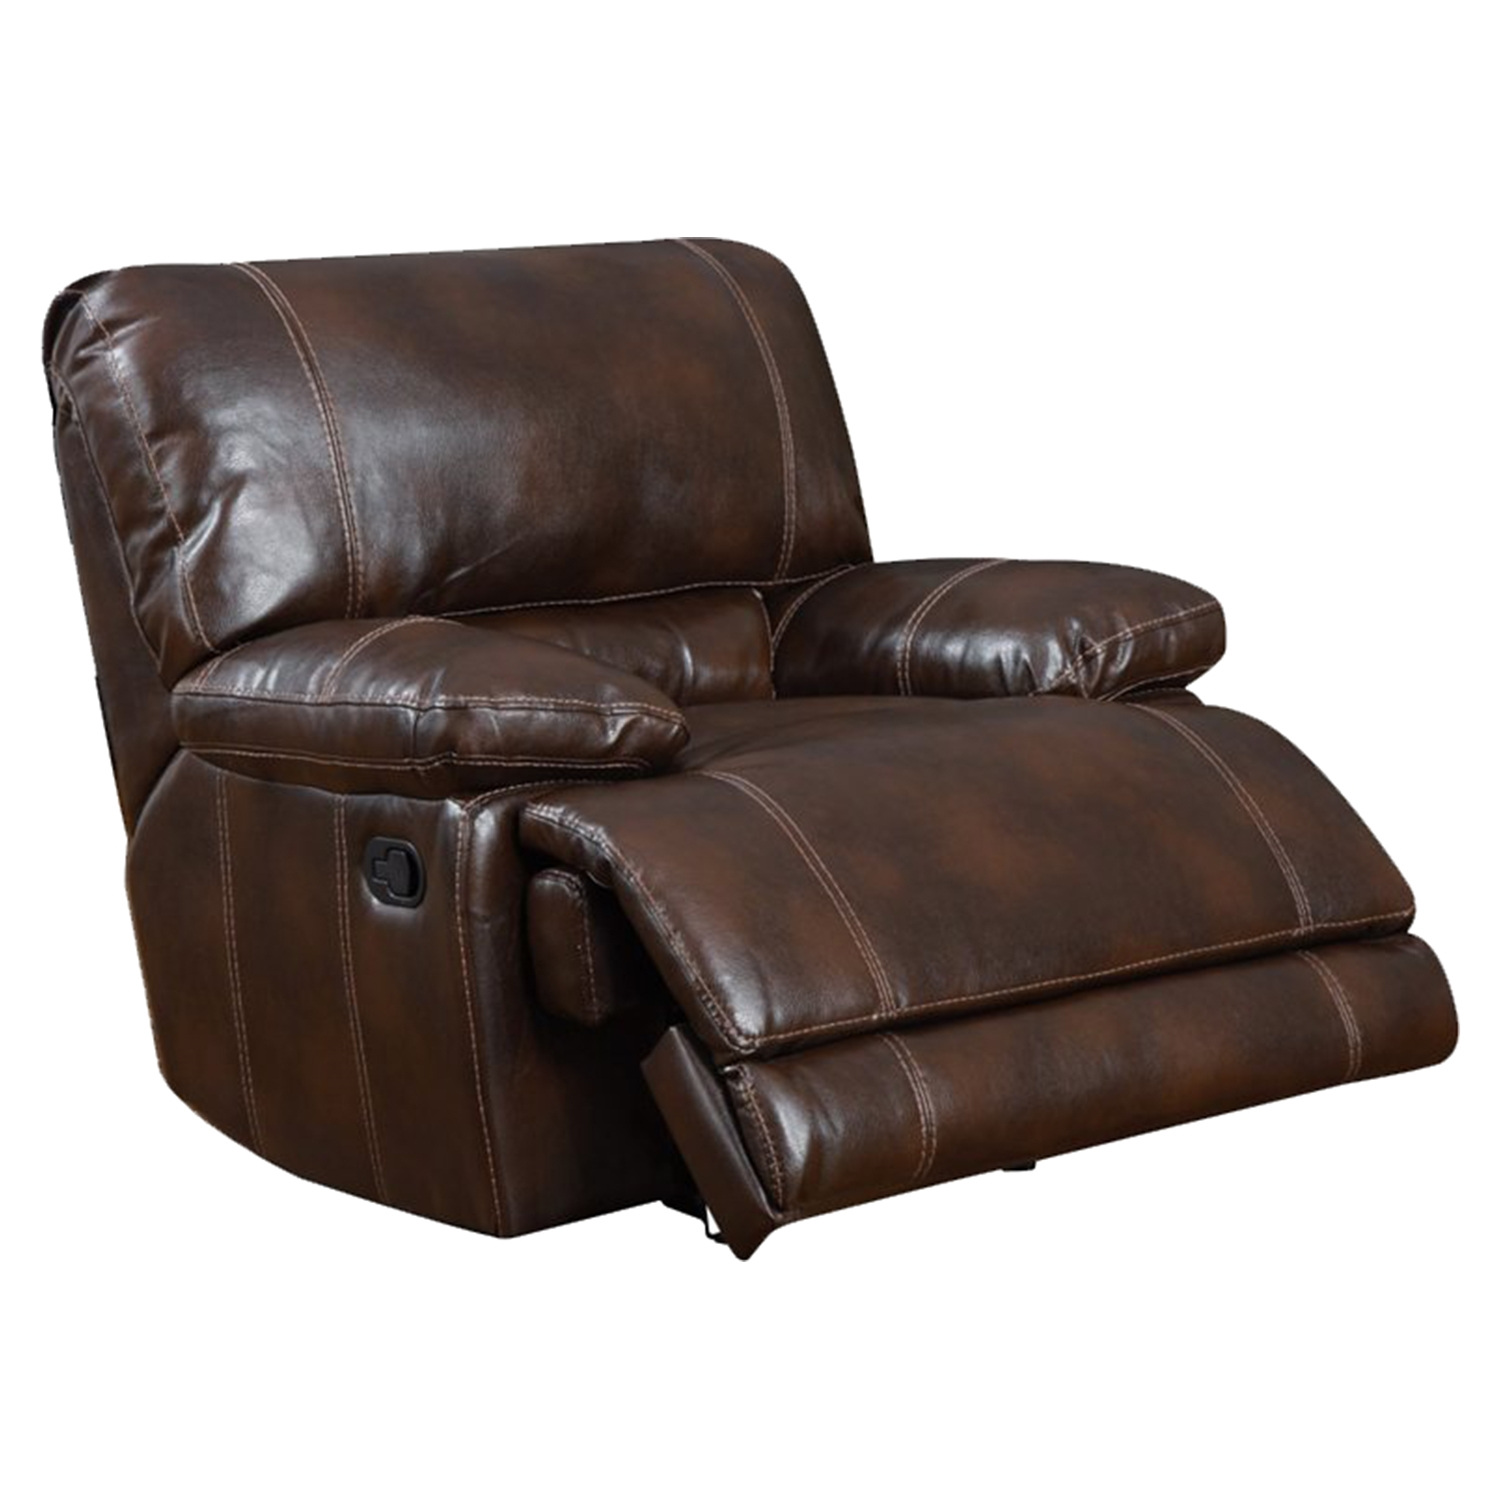 Cristian Console Reclining Sofa Set  Brown Leather  DCG Stores